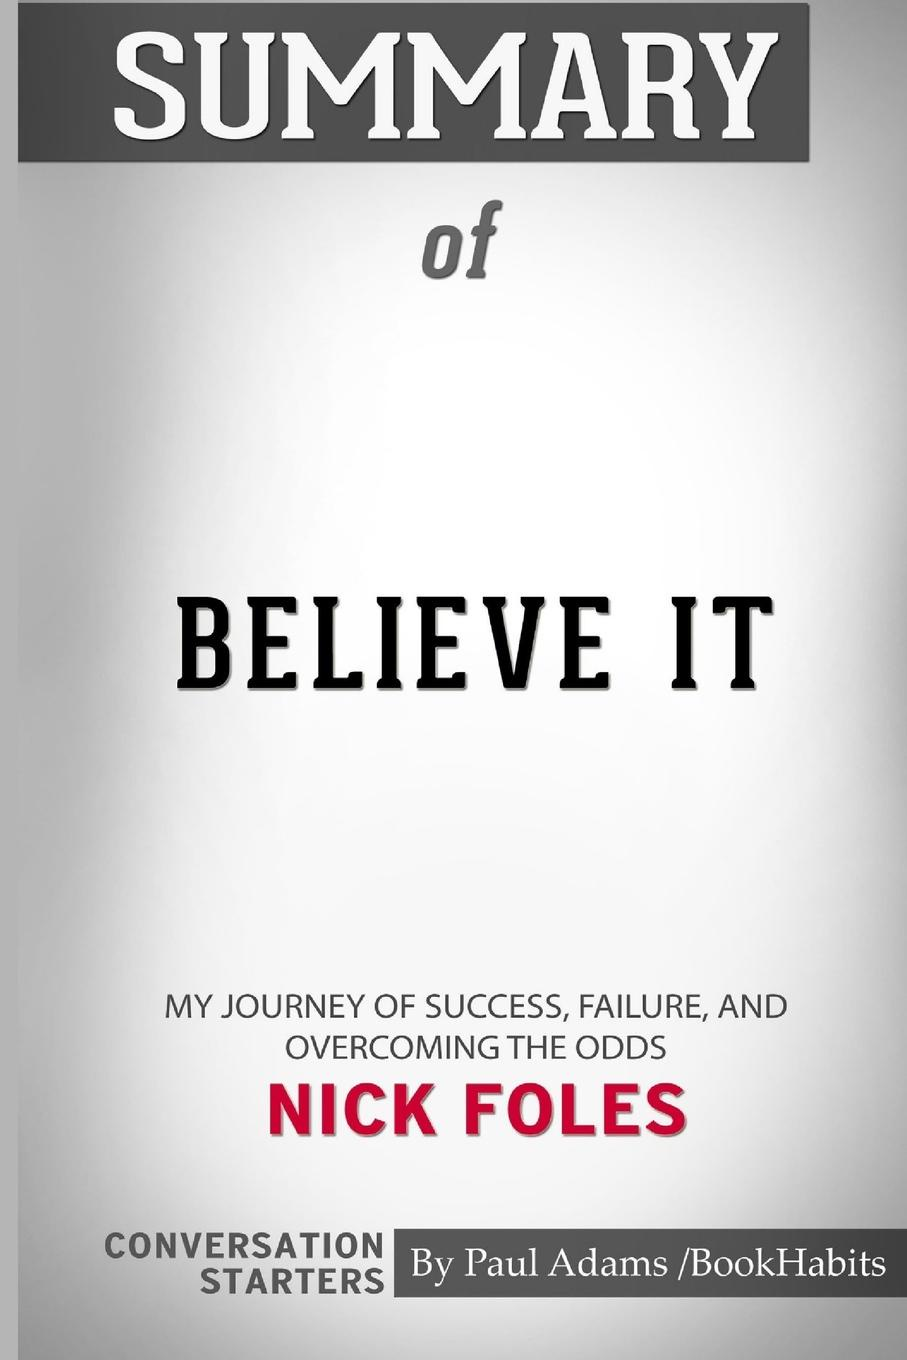 лучшая цена Paul Adams / BookHabits Summary of Believe It. My Journey of Success, Failure, and Overcoming the Odds by Nick Foles: Conversation Starters